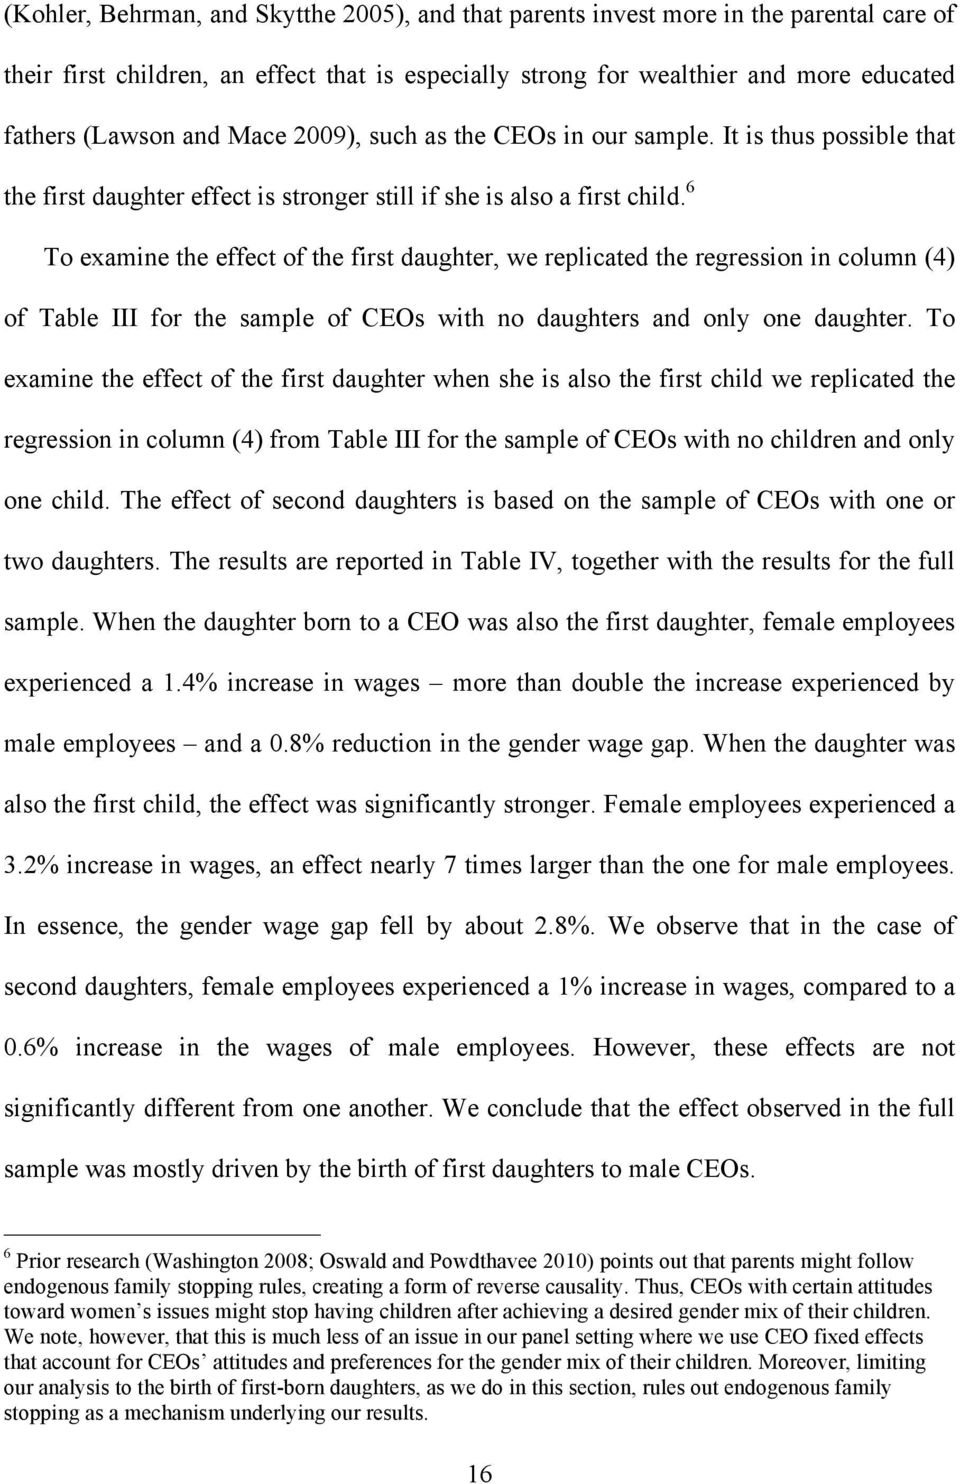 6 To examine the effect of the first daughter, we replicated the regression in column (4) of Table III for the sample of CEOs with no daughters and only one daughter.